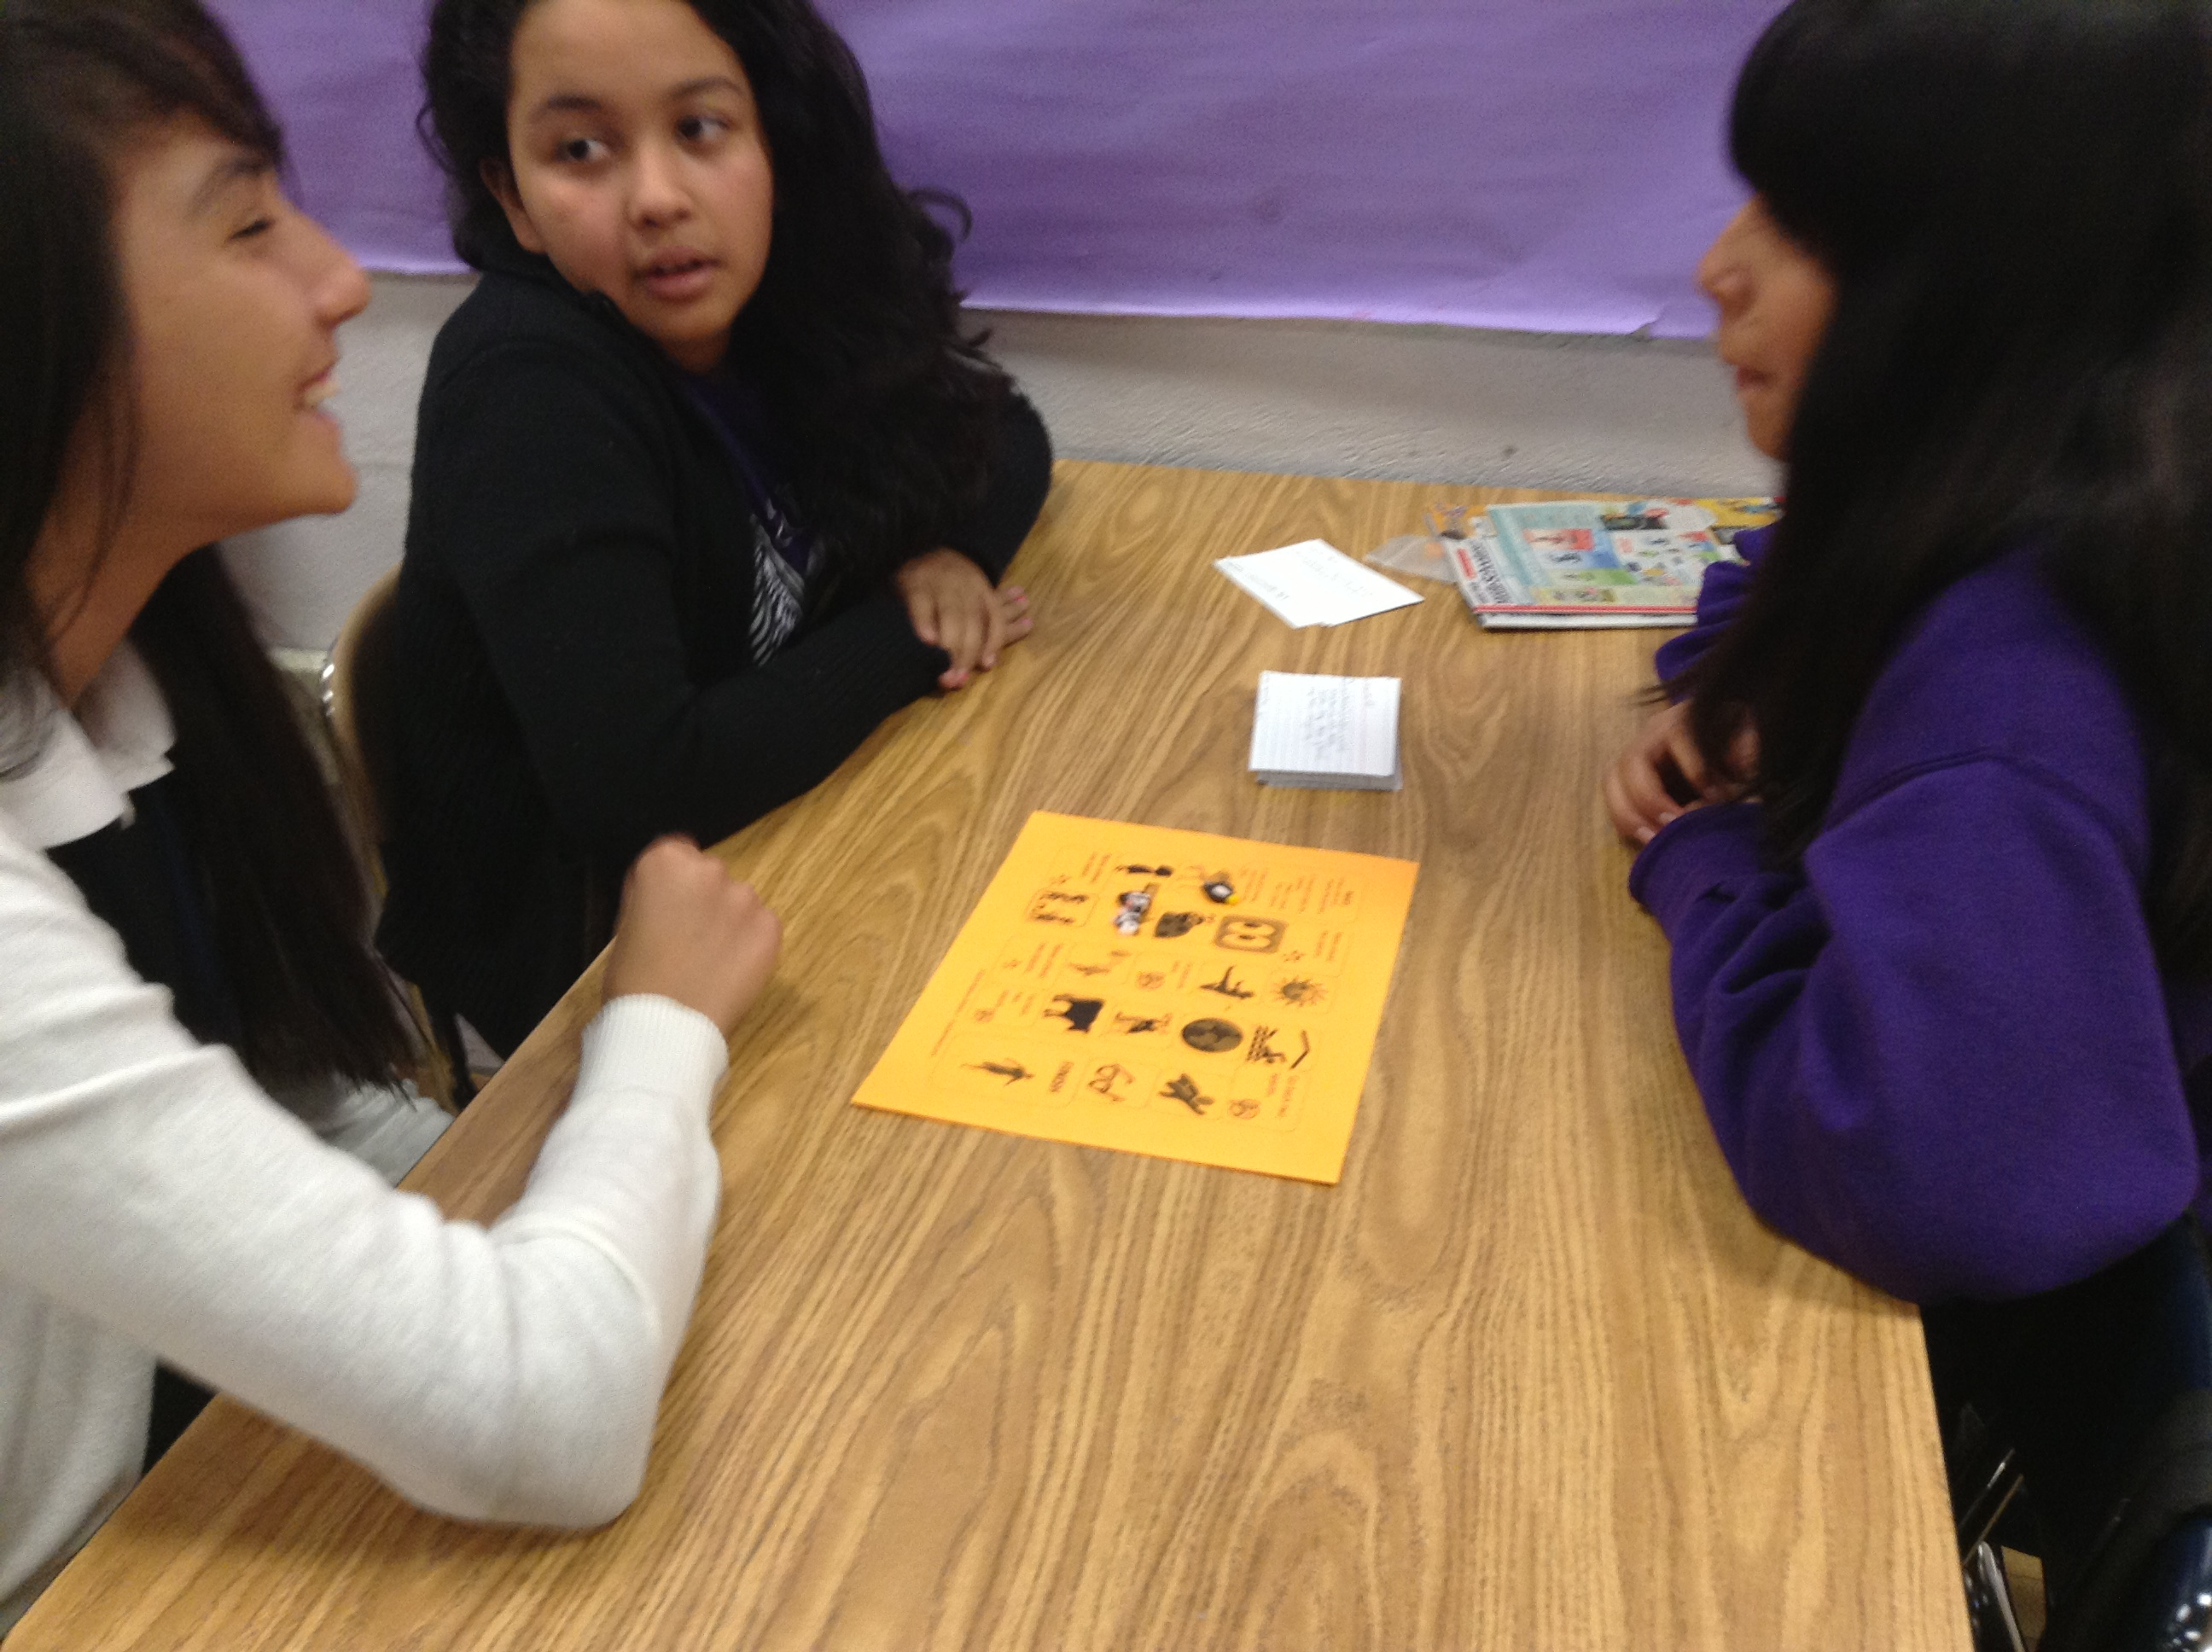 Classroom Games Ideas For College Students ~ How to make classroom board games without lifting a finger